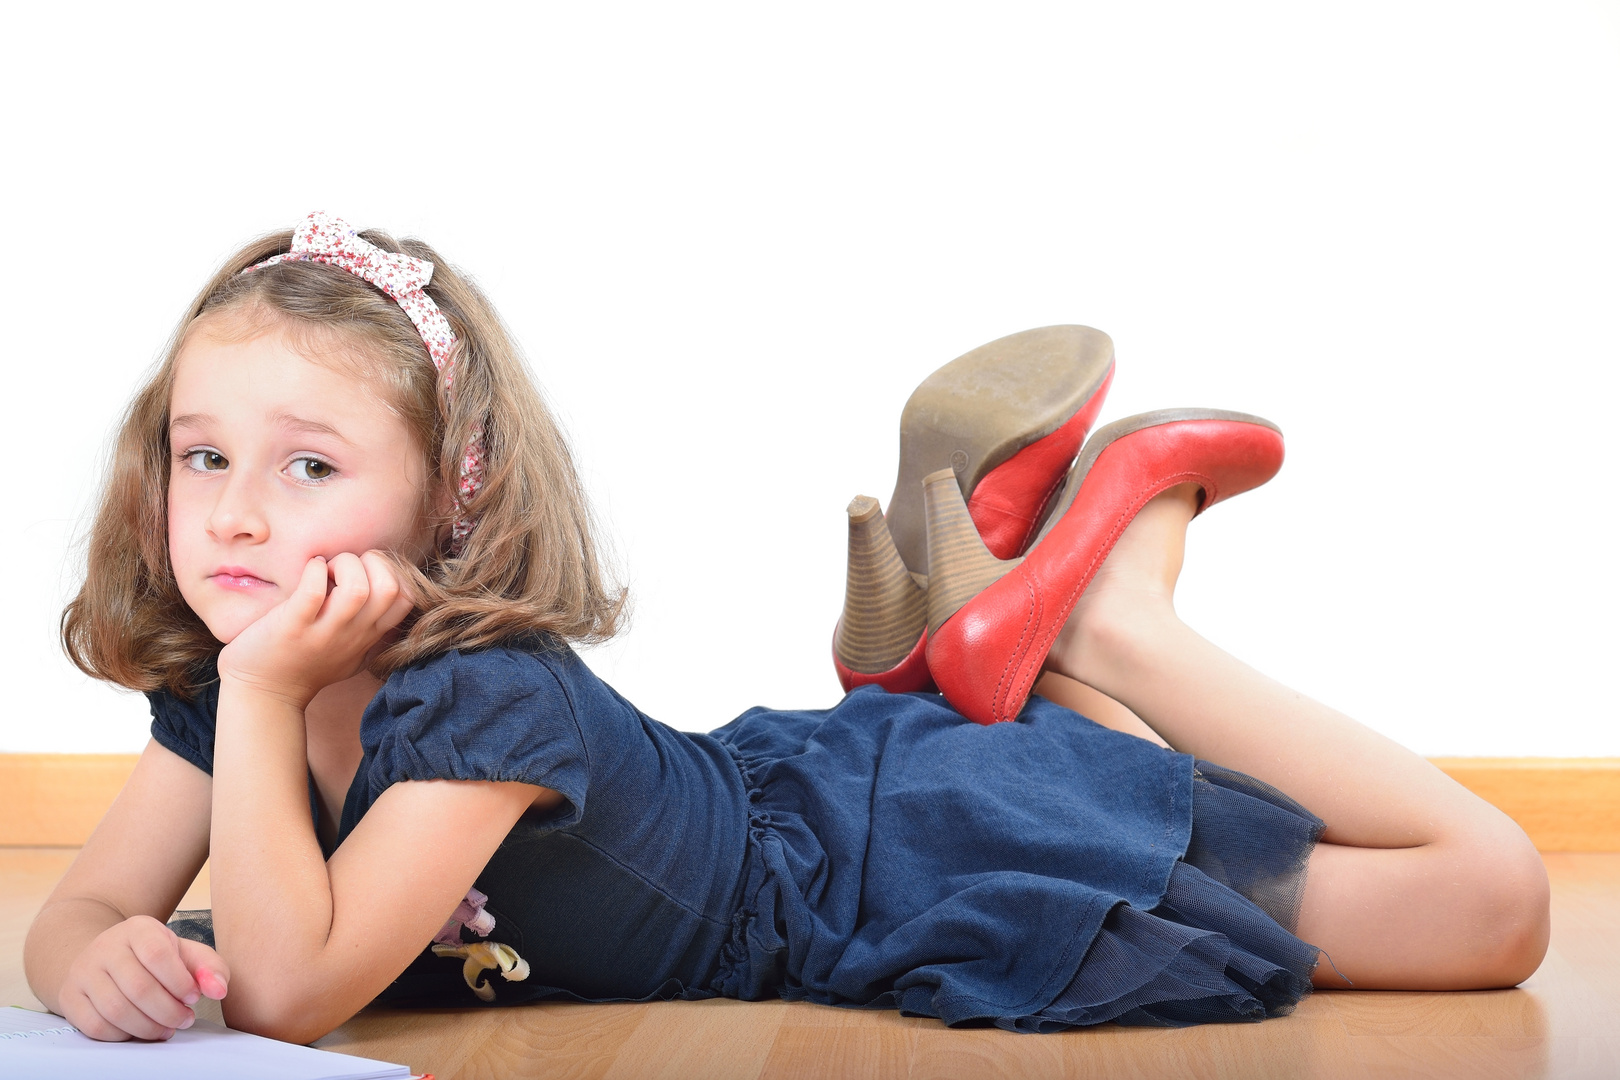 Girl wearing mother's shoes is reading and posing